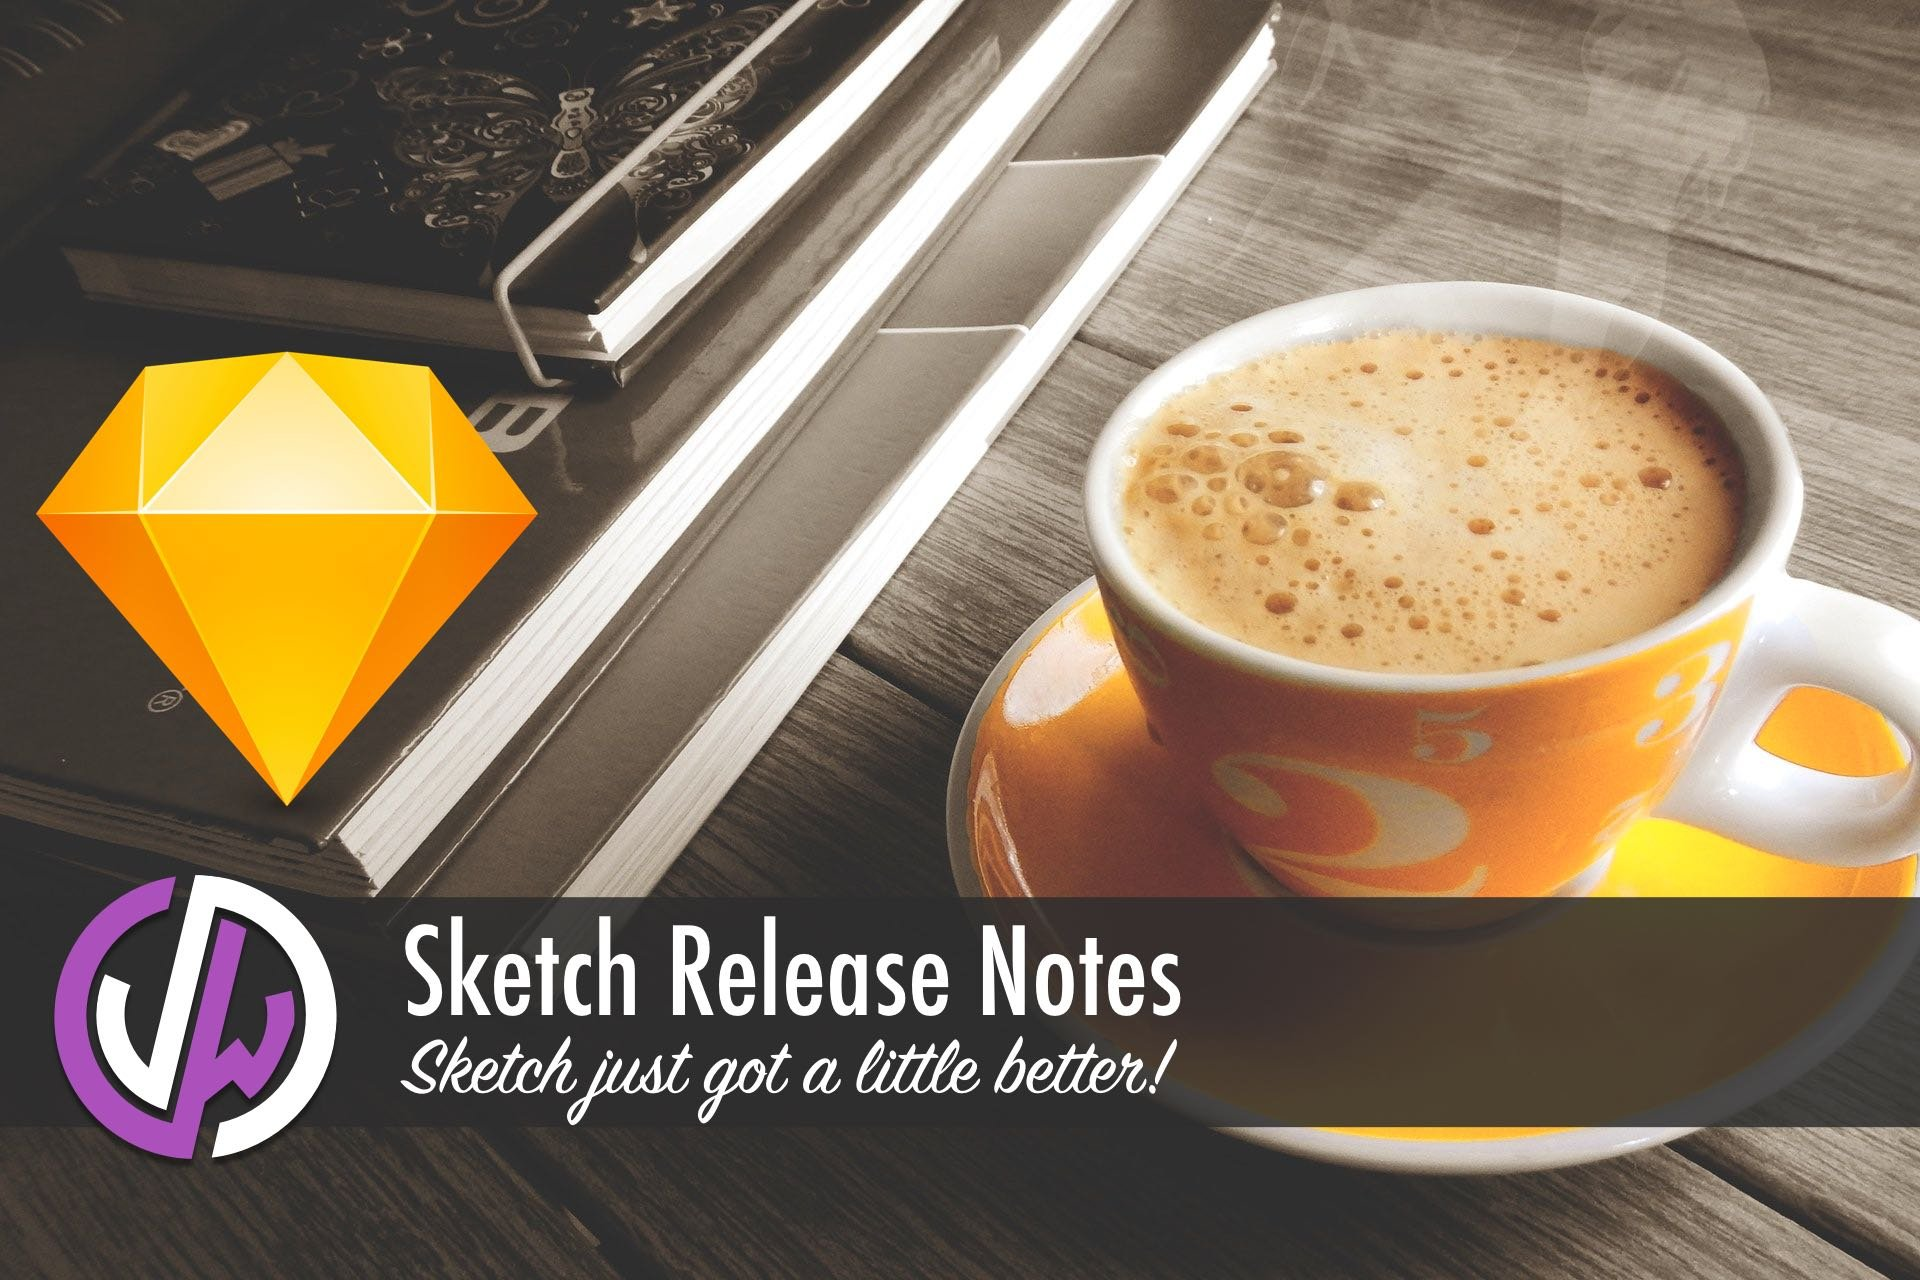 Sketch 66 and Sketch 66.1